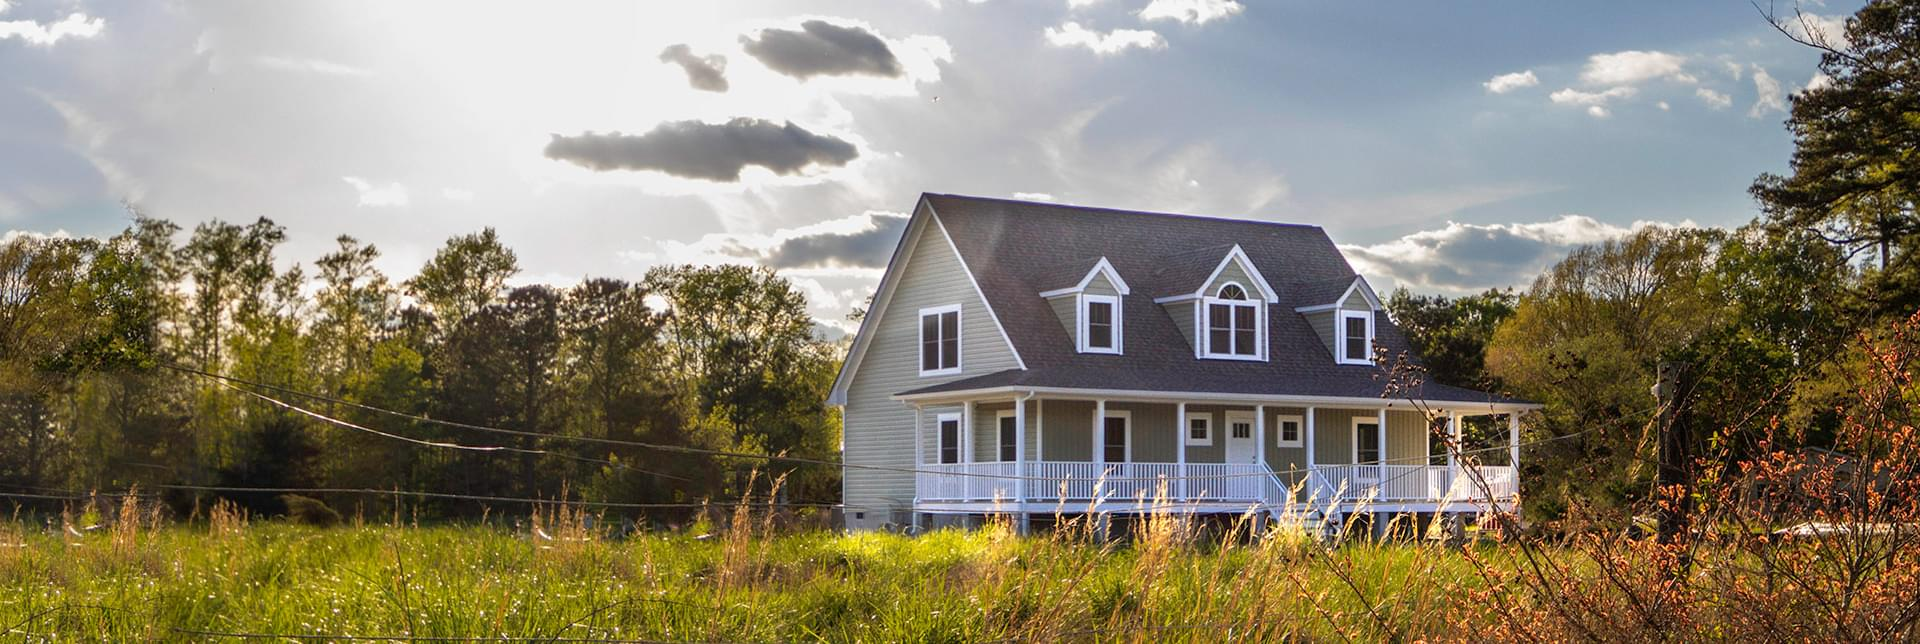 New Homes in Tyrrell County NC